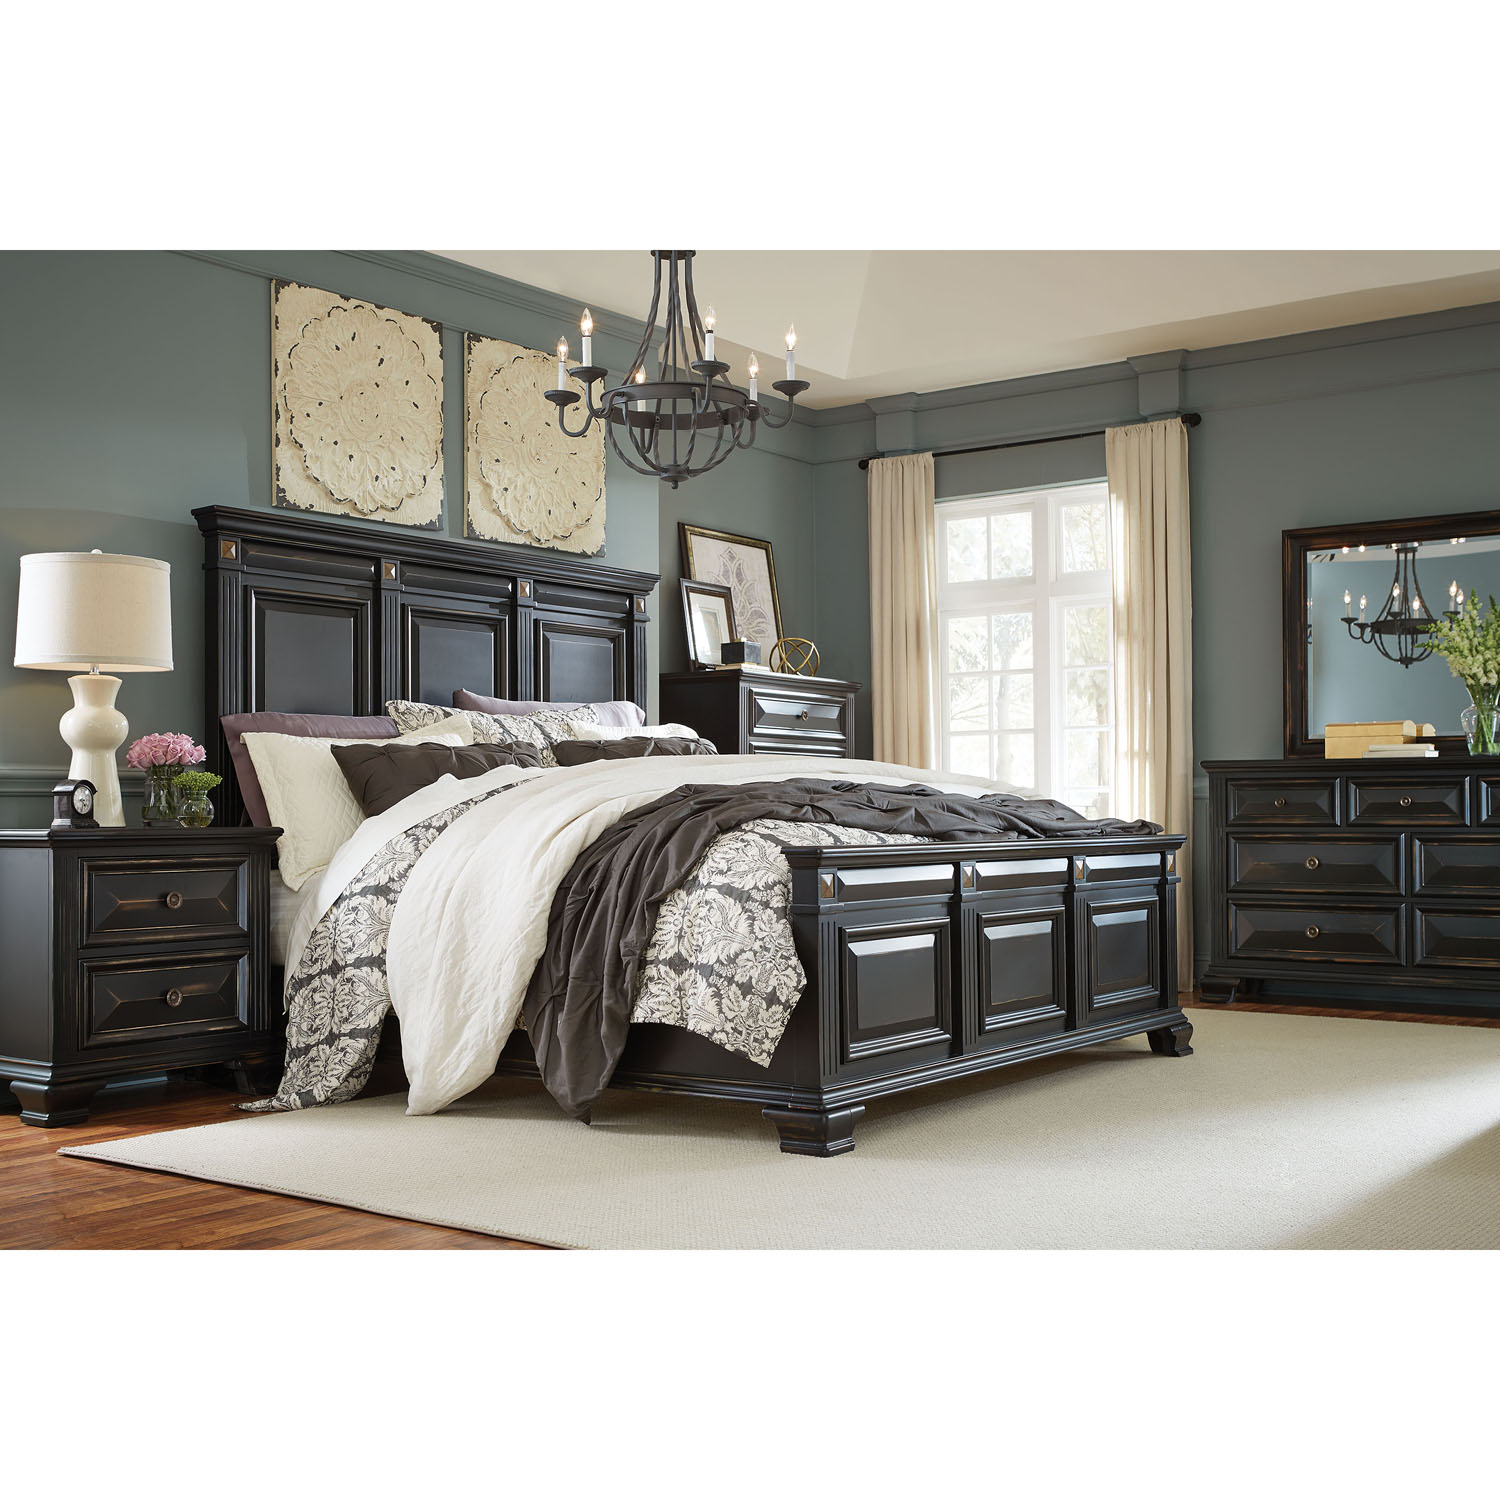 Cambridge Heritage 5-Piece Bedroom Suite: Queen bed, Dresser, Mirror, Chest, and Nightstand